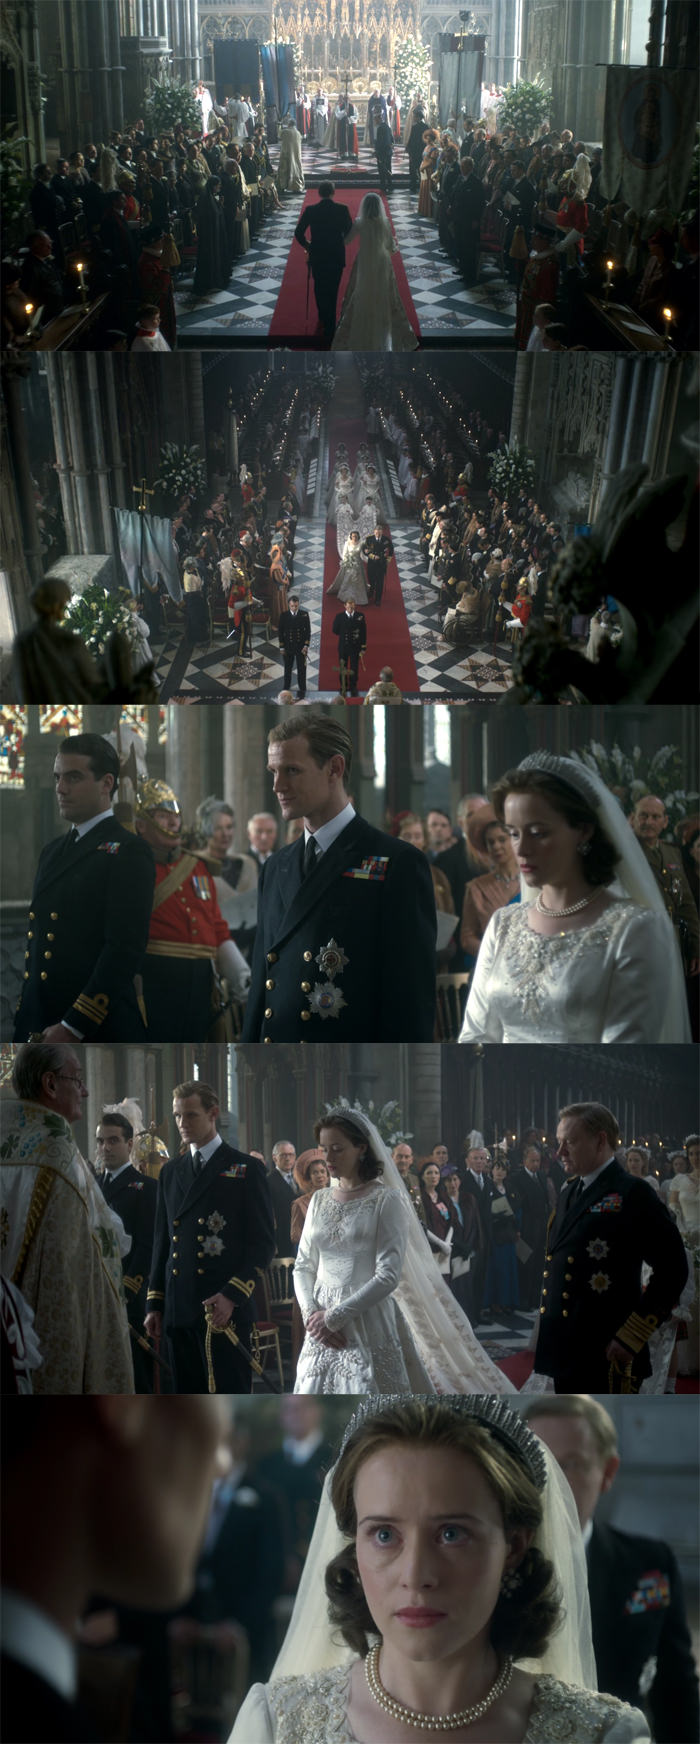 the-crown-style-season-1-episode-1-netflix-costumes-tom-lorenzo-site-6